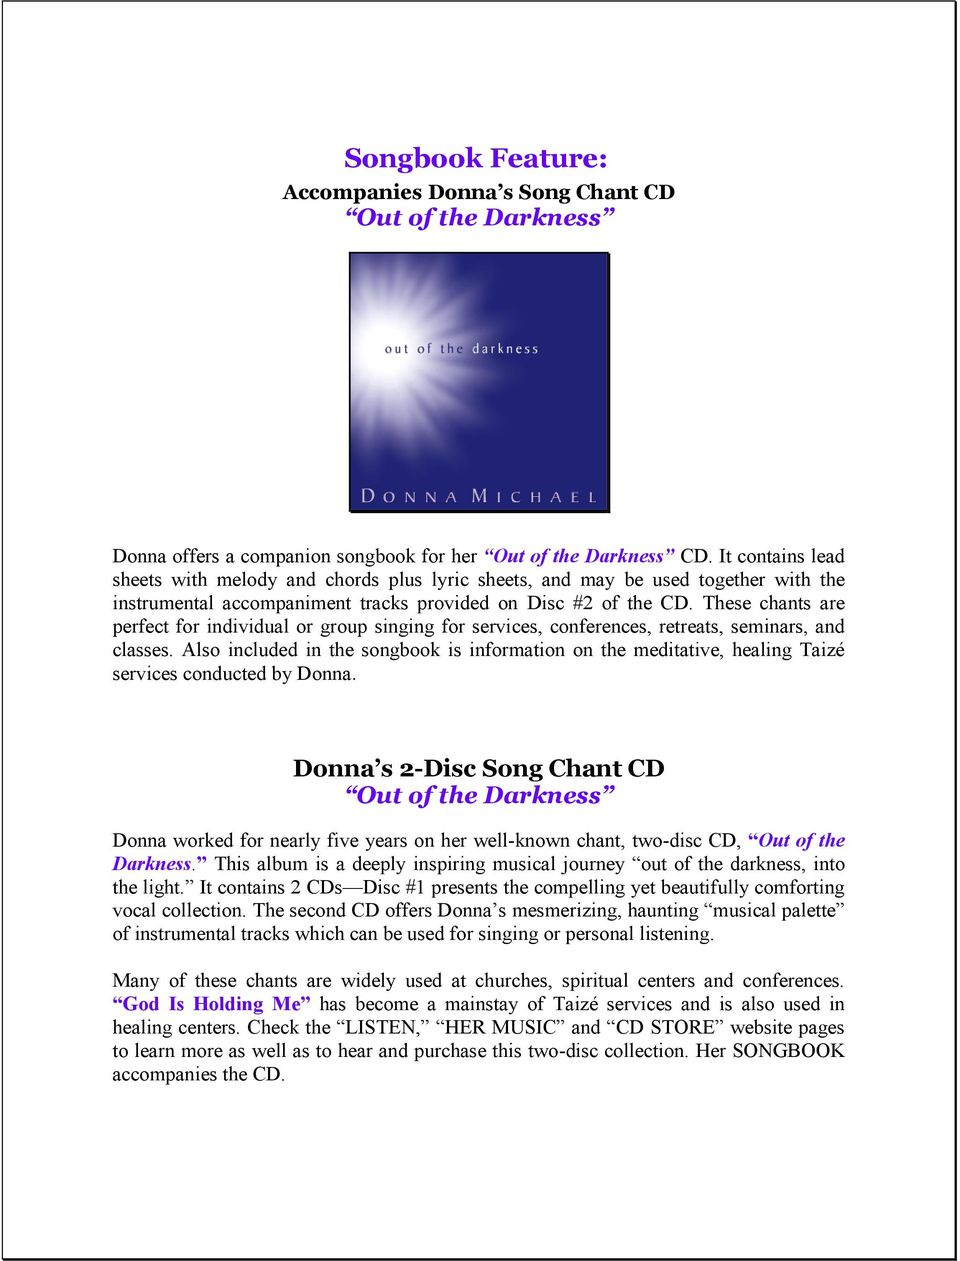 These chants are perfect for individual or group singing for services, conferences, retreats, seminars, and classes.